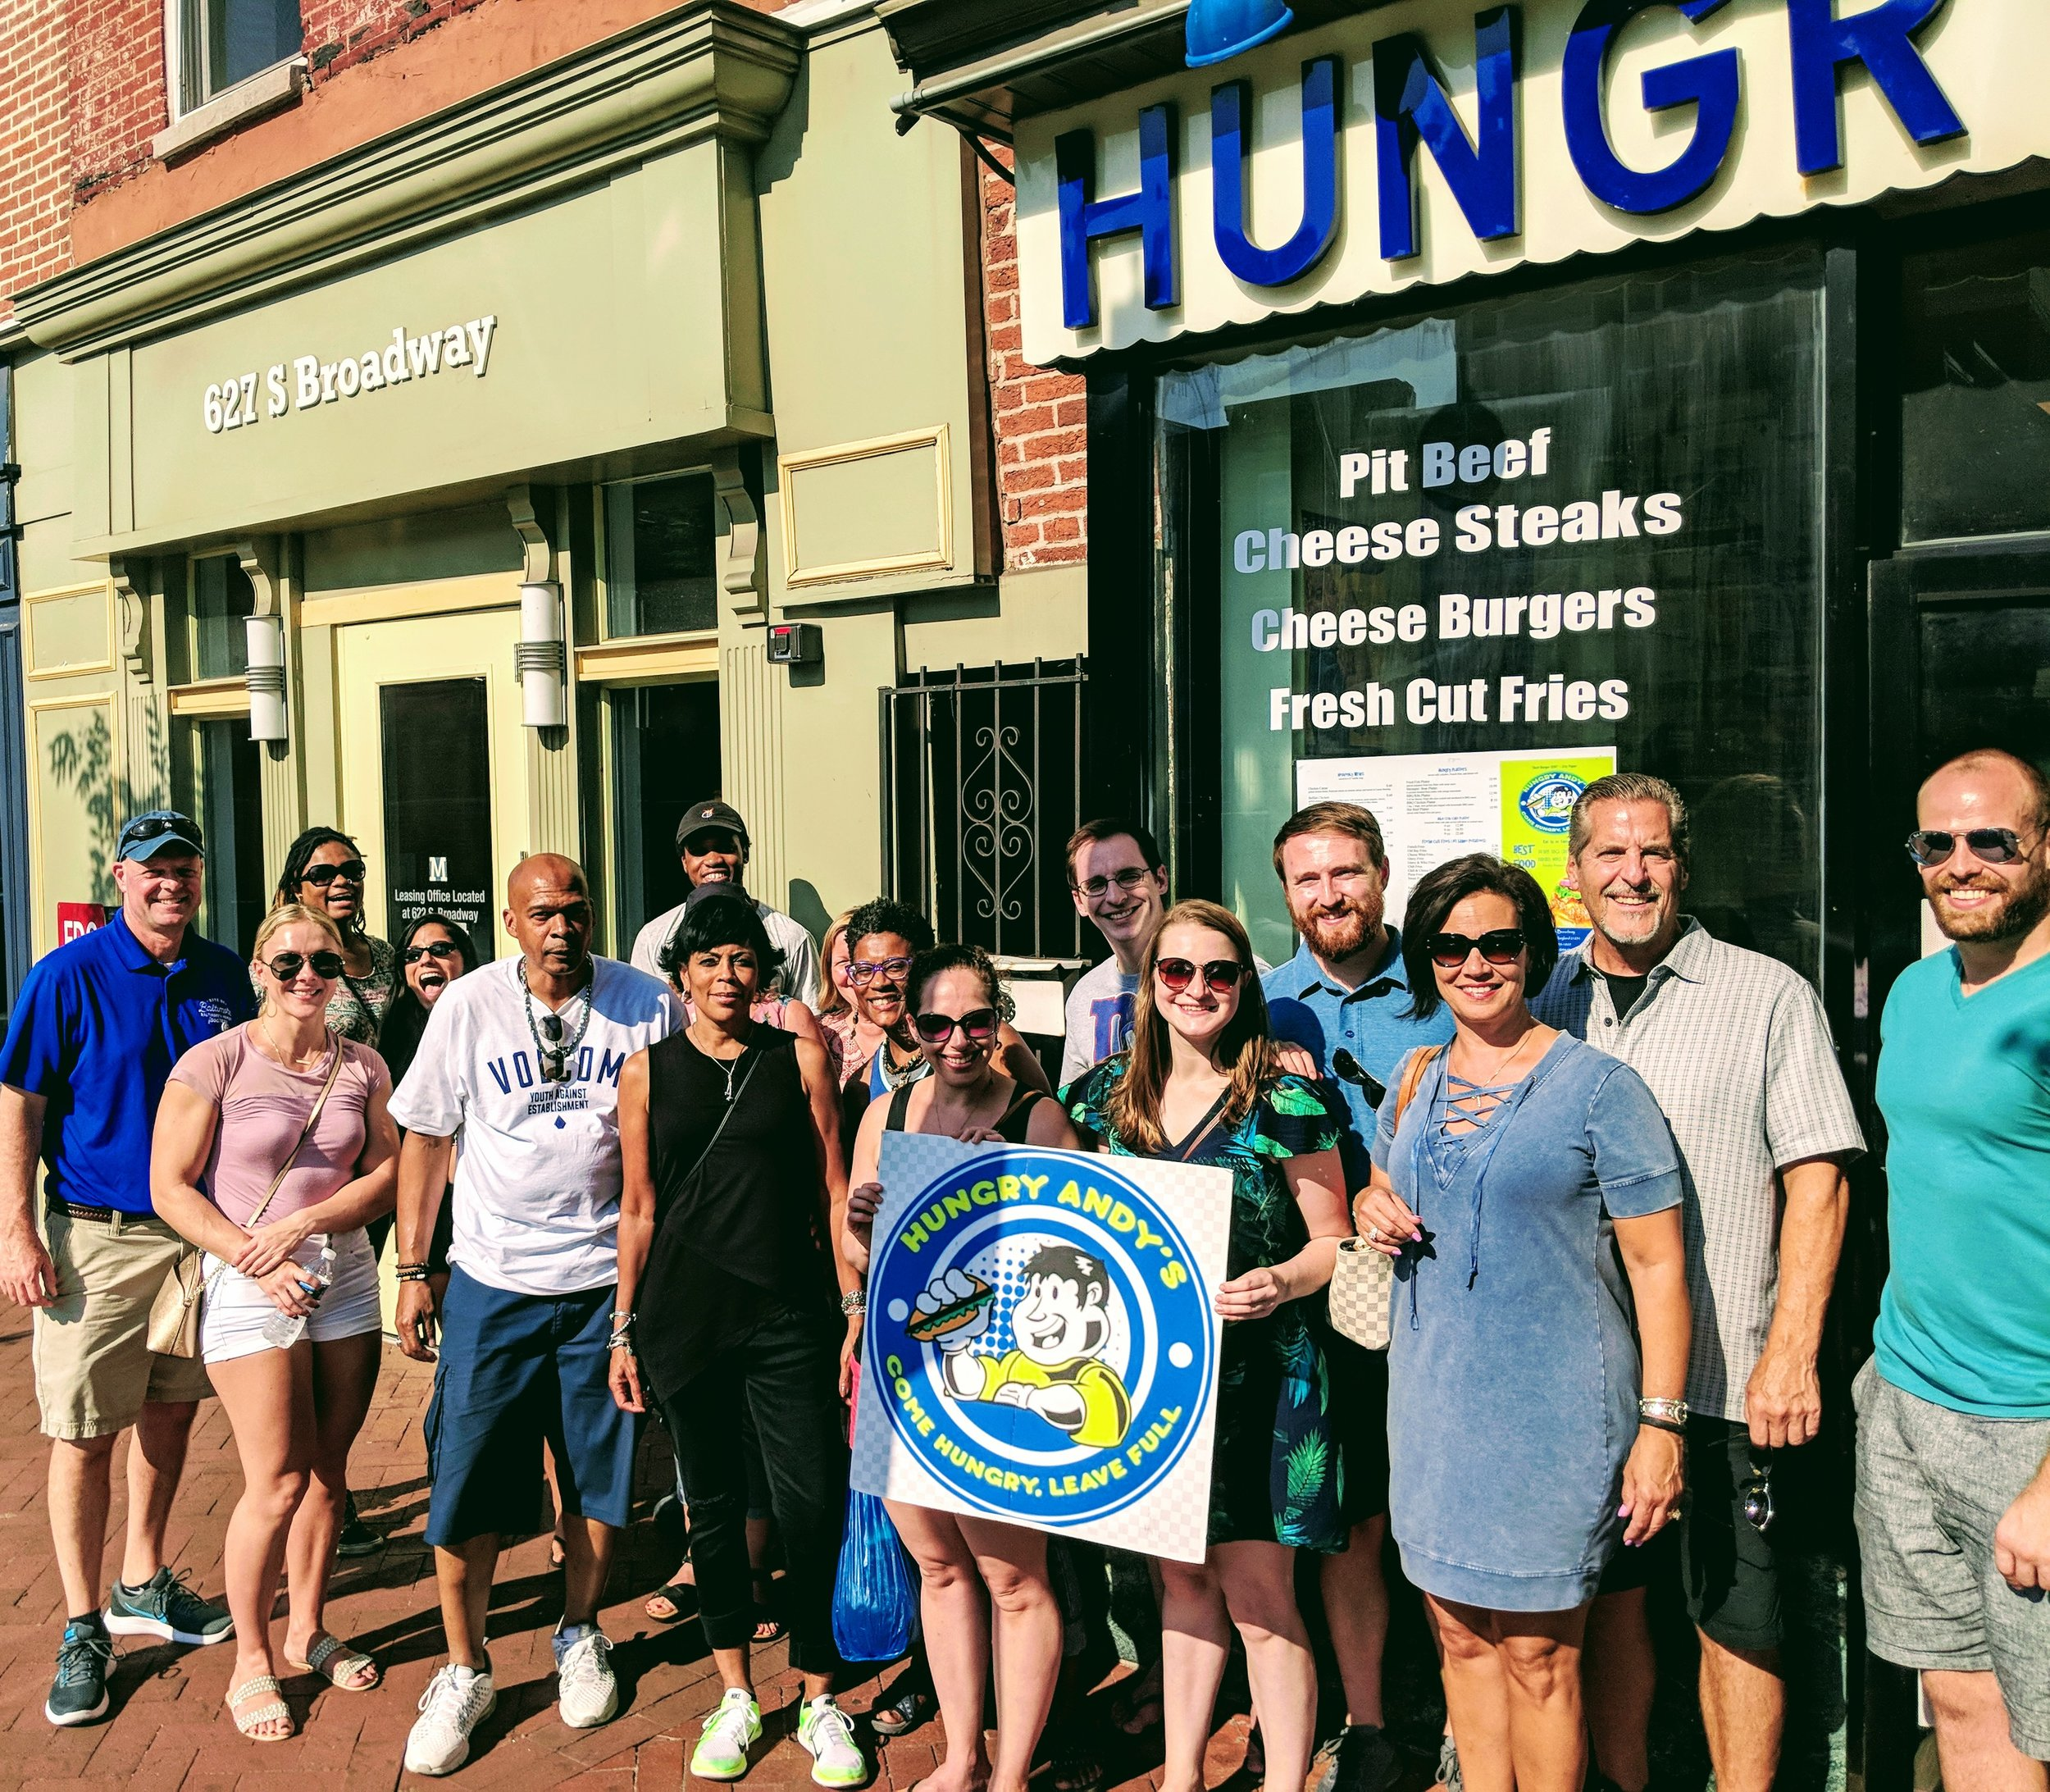 Corporate team building: even more fun with a food tour!